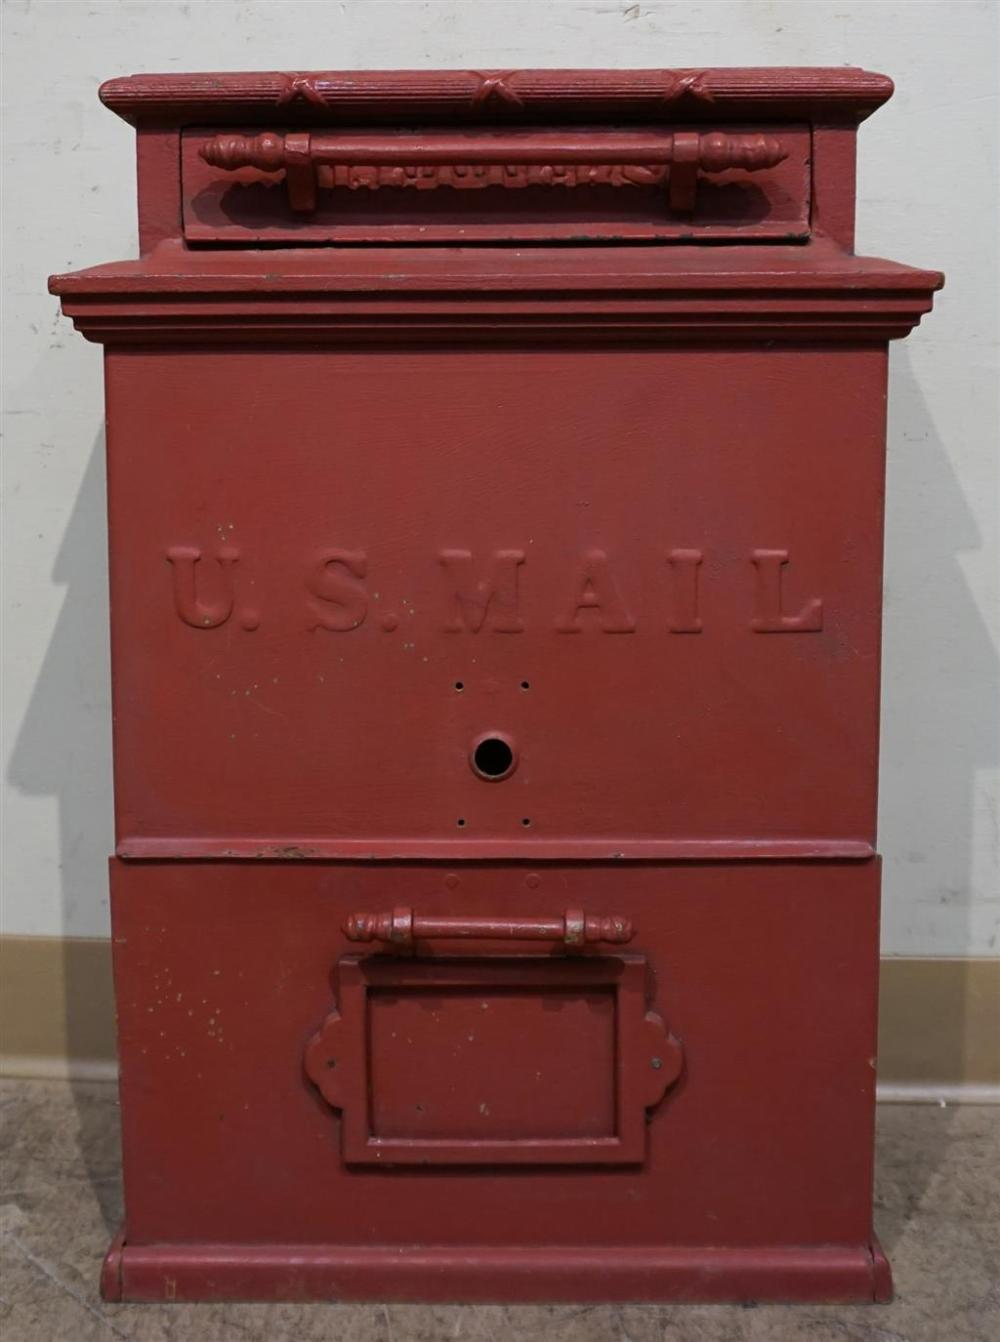 Red Painted Cast Iron U.S. Mail Letter Drop Box